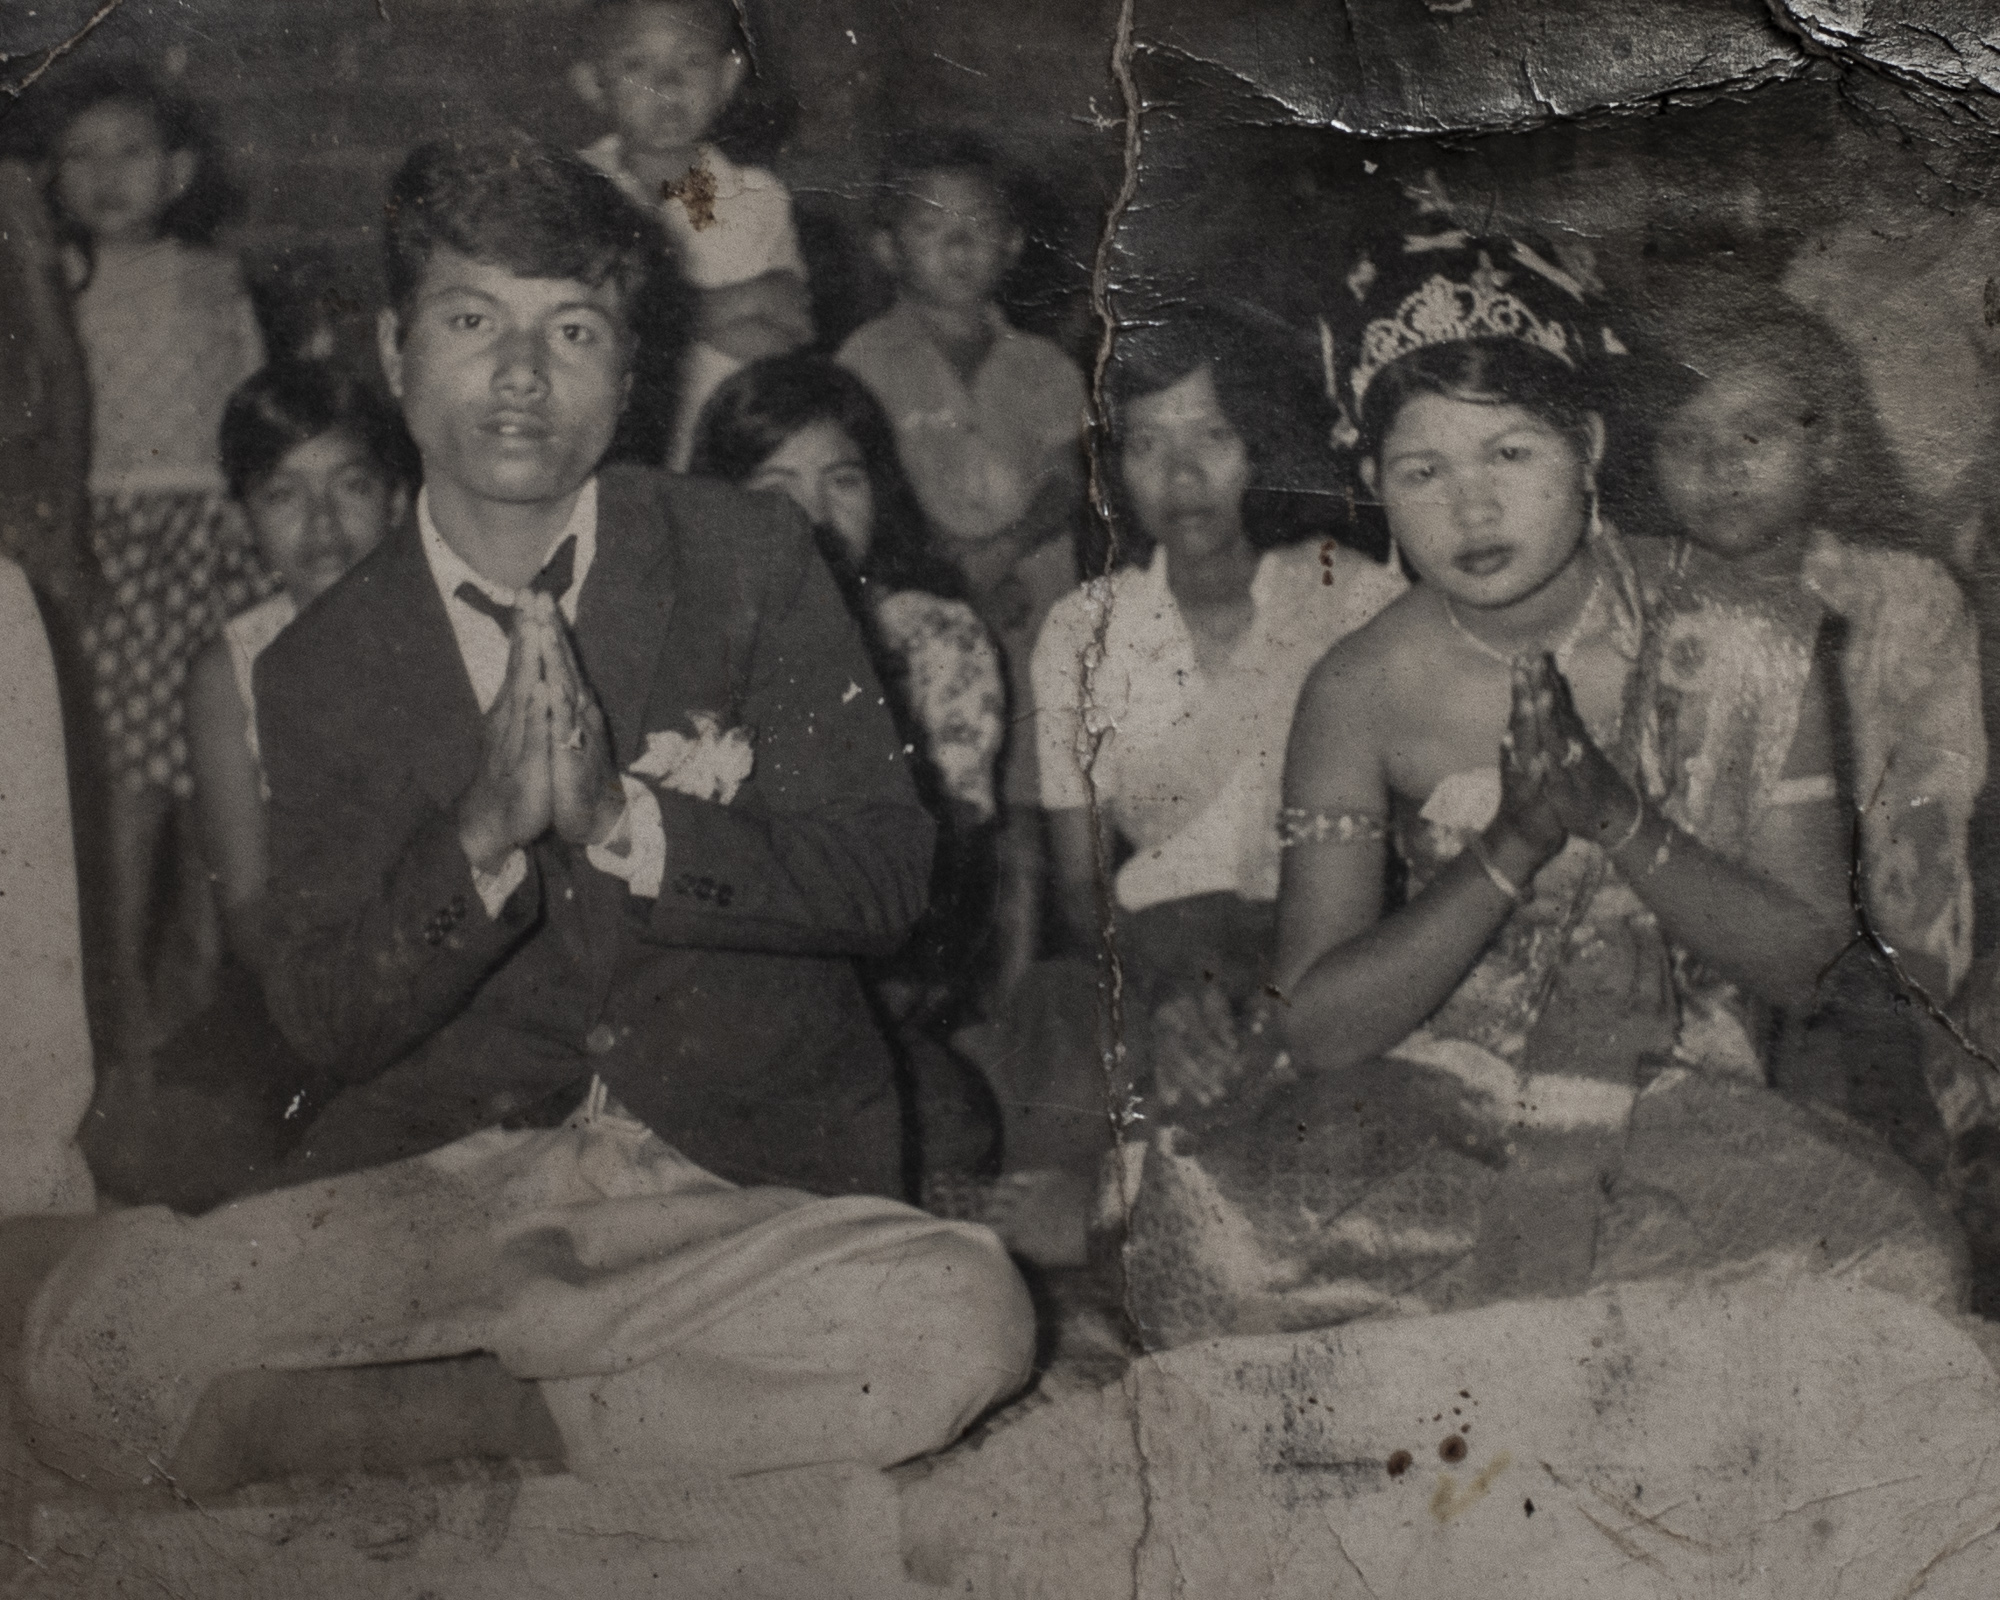 Chia's wedding photo with her first husband, before the Khmer Rouge regime.